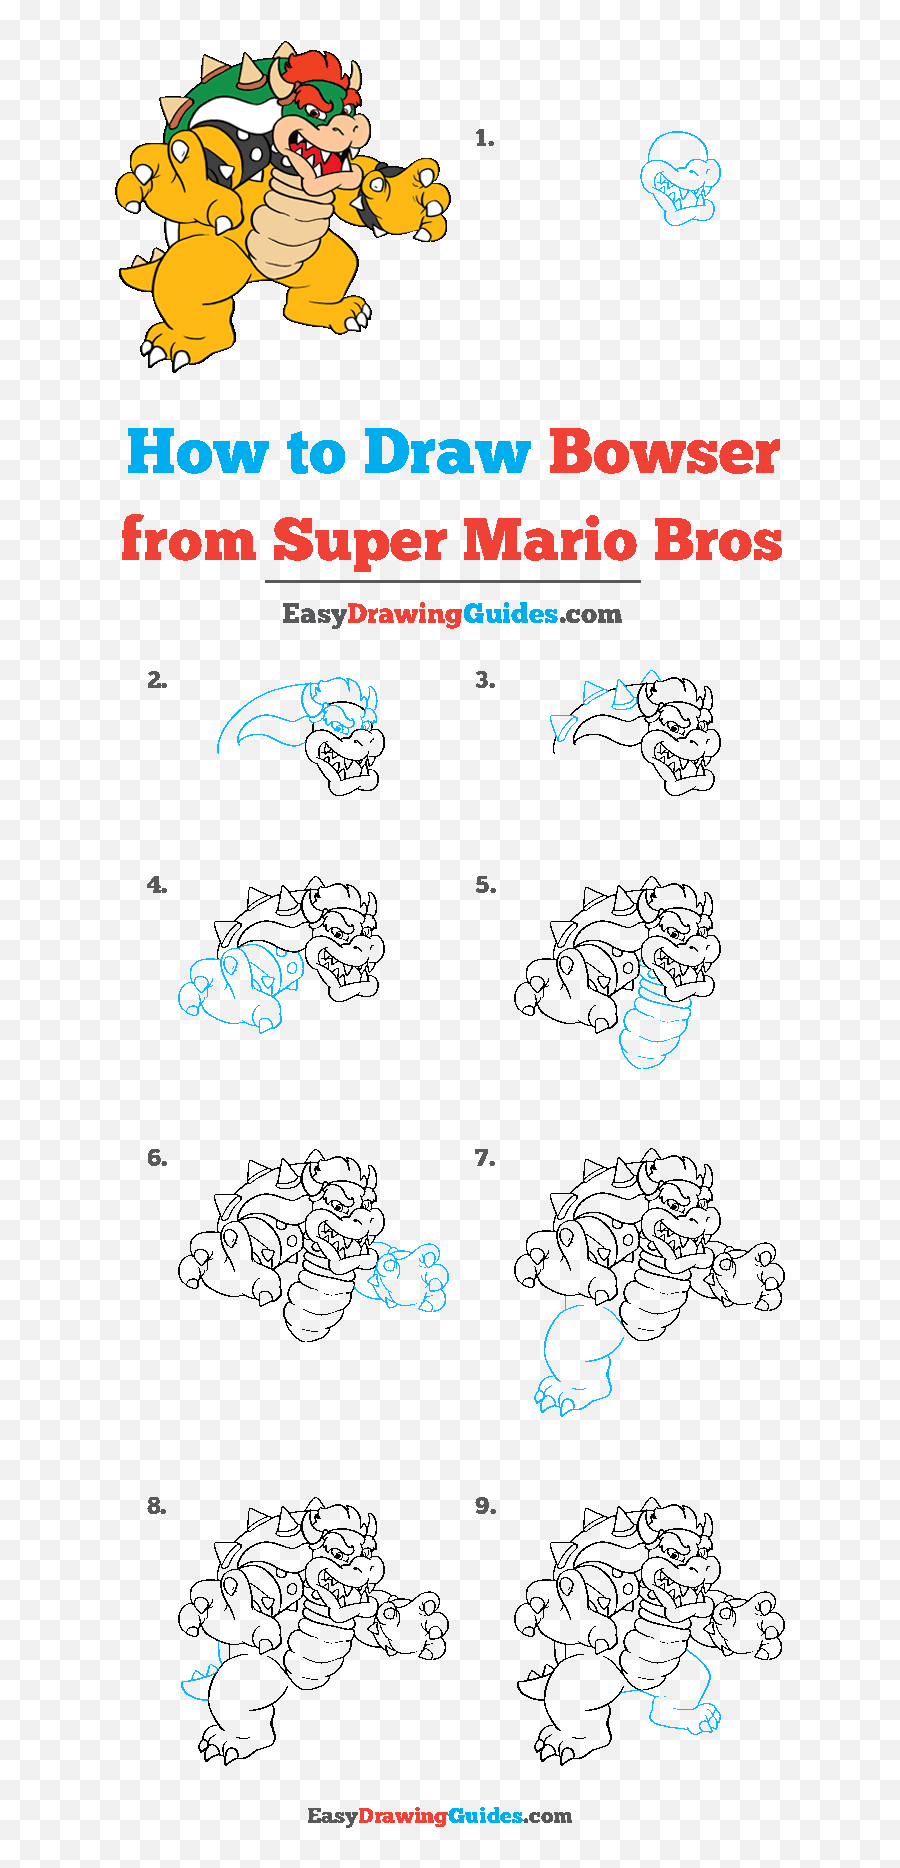 How To Draw Bowser From Super Mario Bros Really Easy Step By Step Super Mario Drawing Png Free Transparent Png Images Pngaaa Com